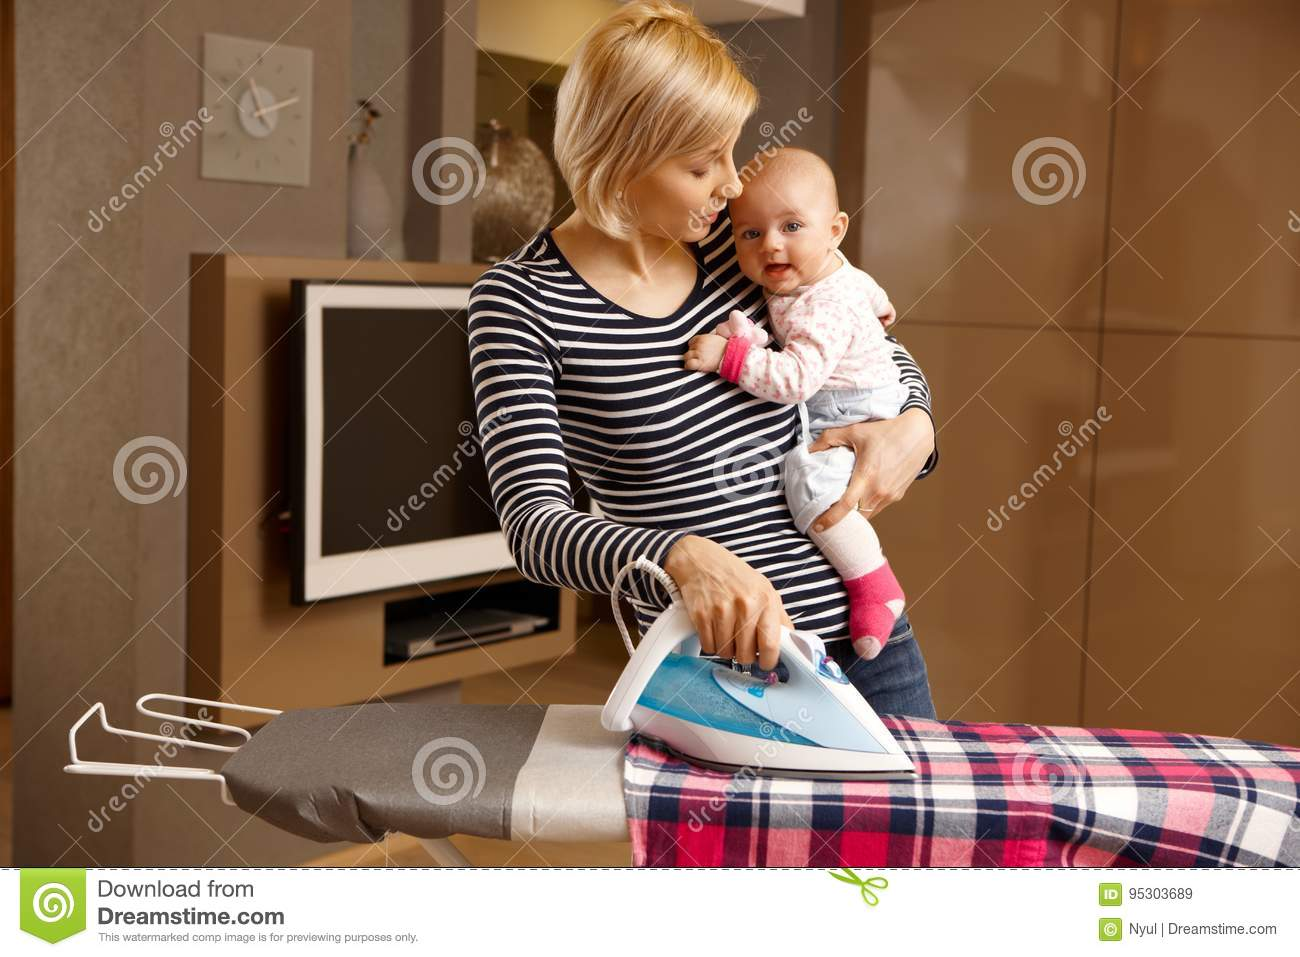 Young mother ironing with baby in arm